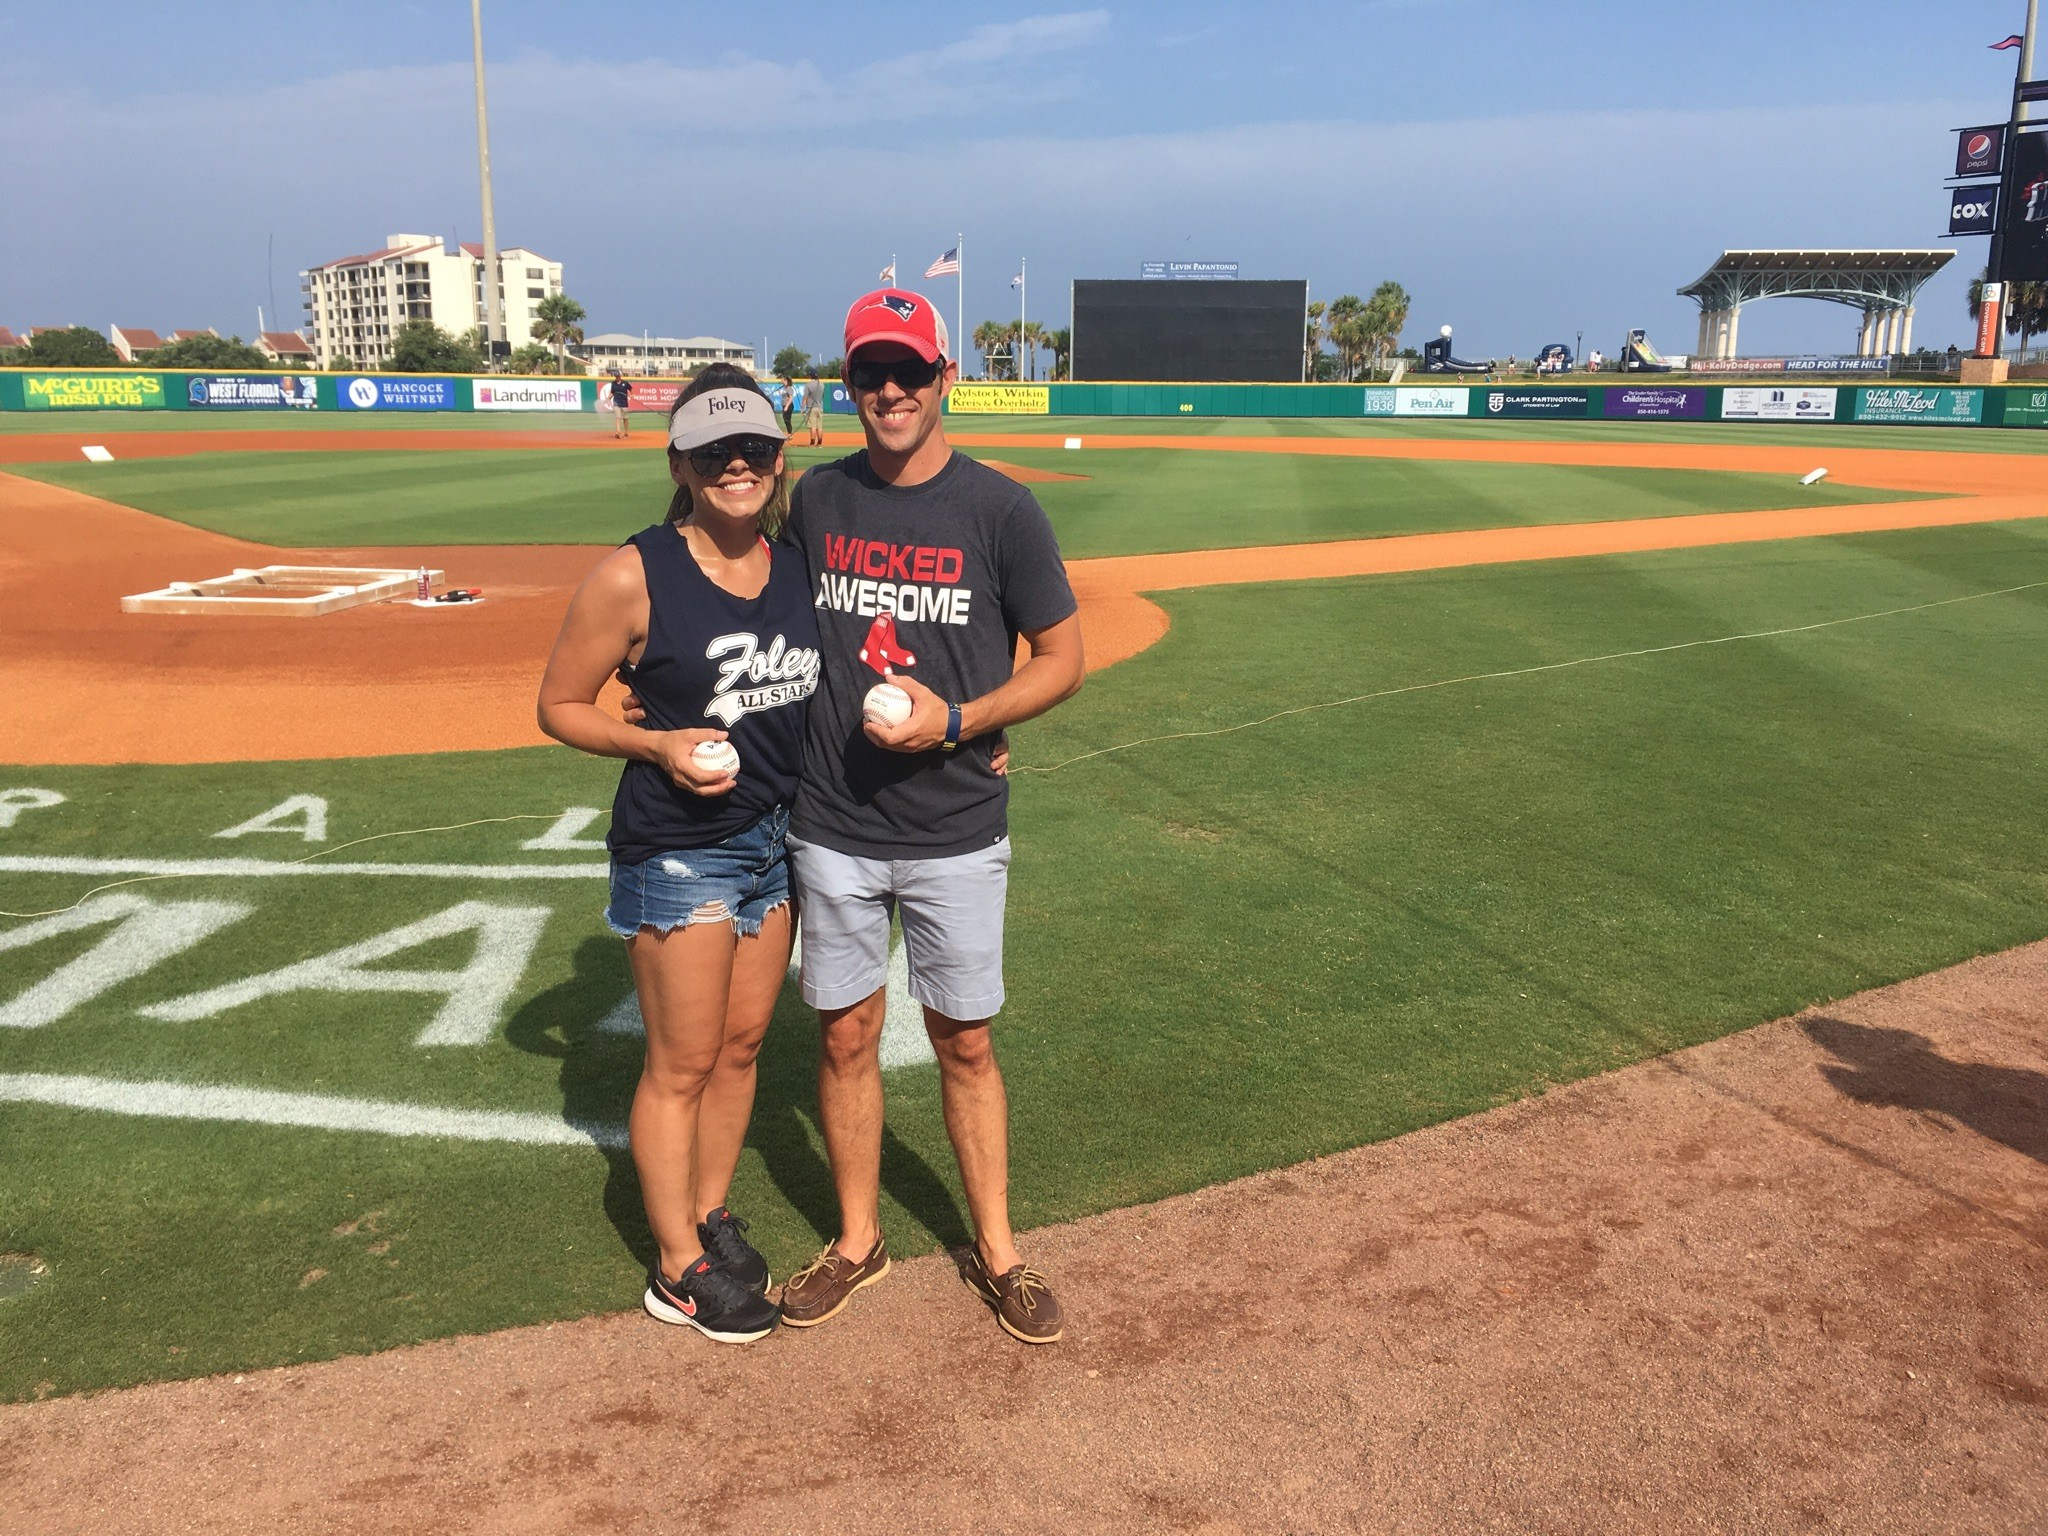 Athletic Assistant and 12U Softball Coach Billy Zantop (right) was interviewed on the field and represented the City of Foley well during this honorary first pitch. Also in picture with Billy Zantop is his assistant coach and team sponsor, Shirley Sullivan.